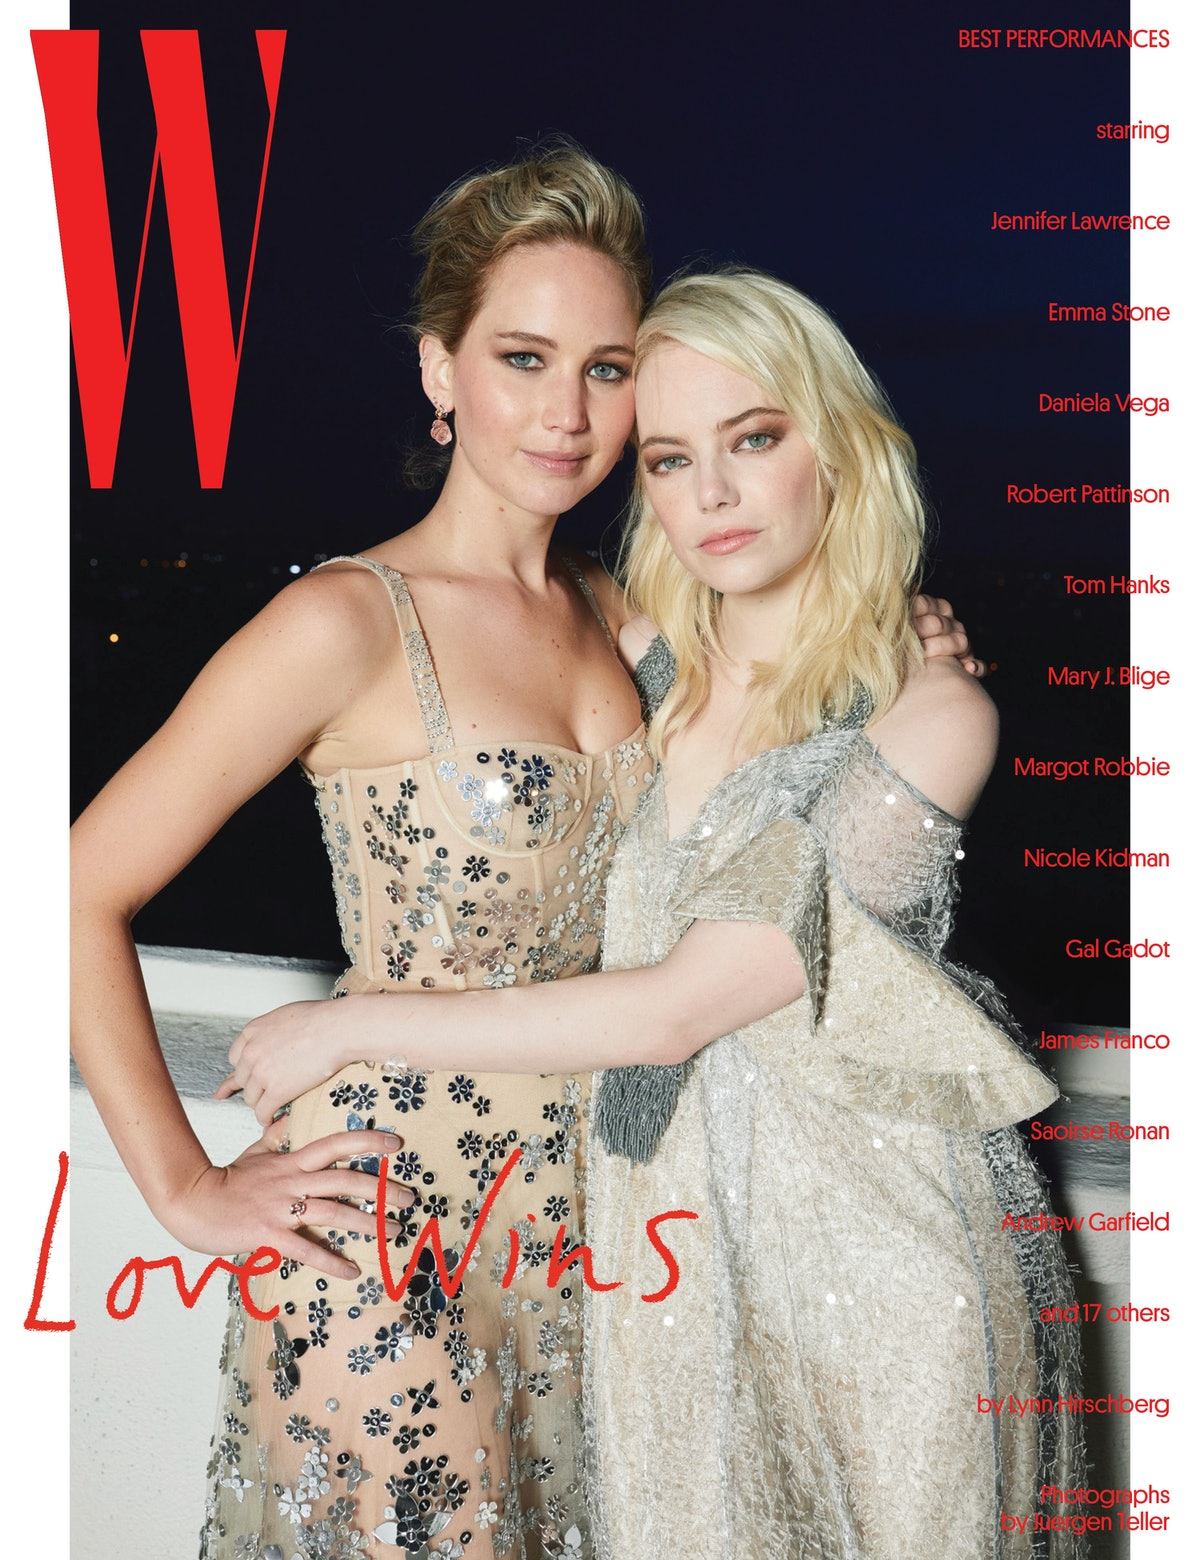 Jennifer Lawrence and Margot Robbie - Best Performances Covers